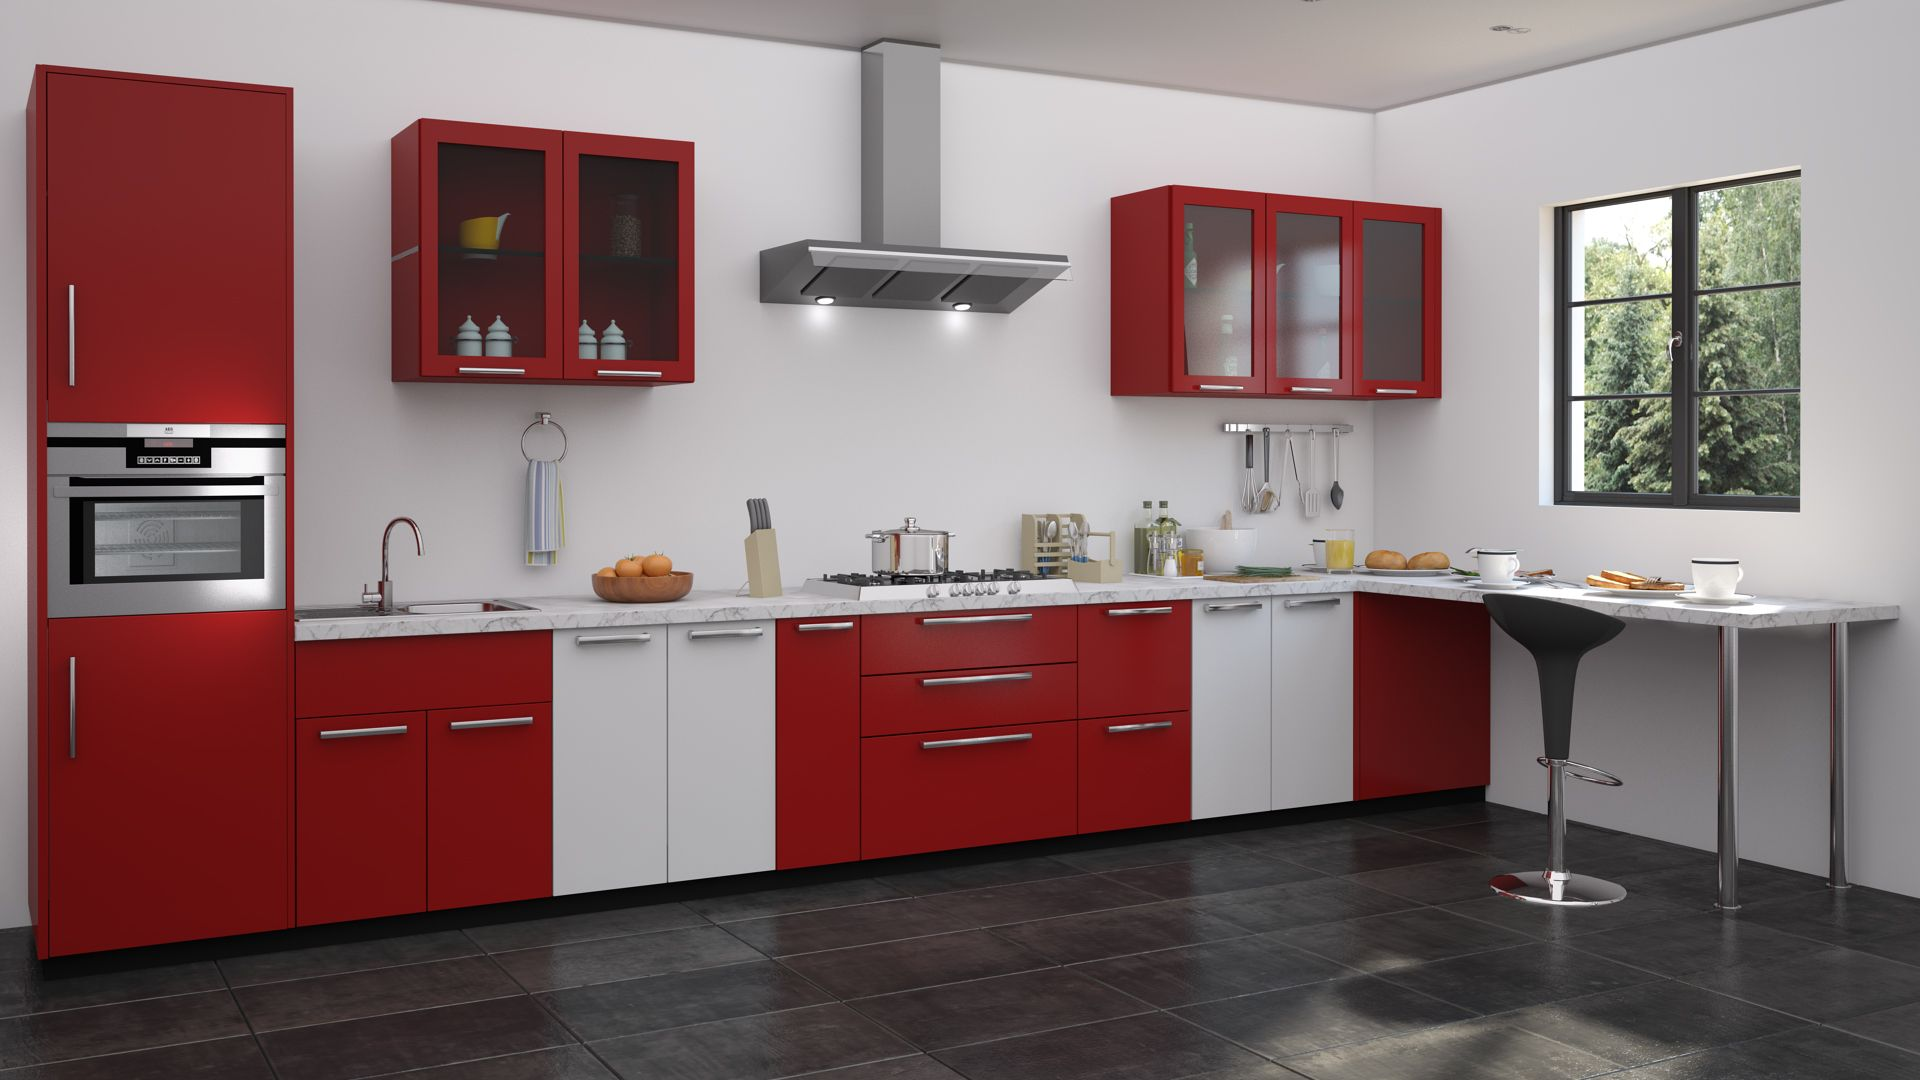 kitchen design red and black. Gallery Of Kitchen Design In Red And White Black